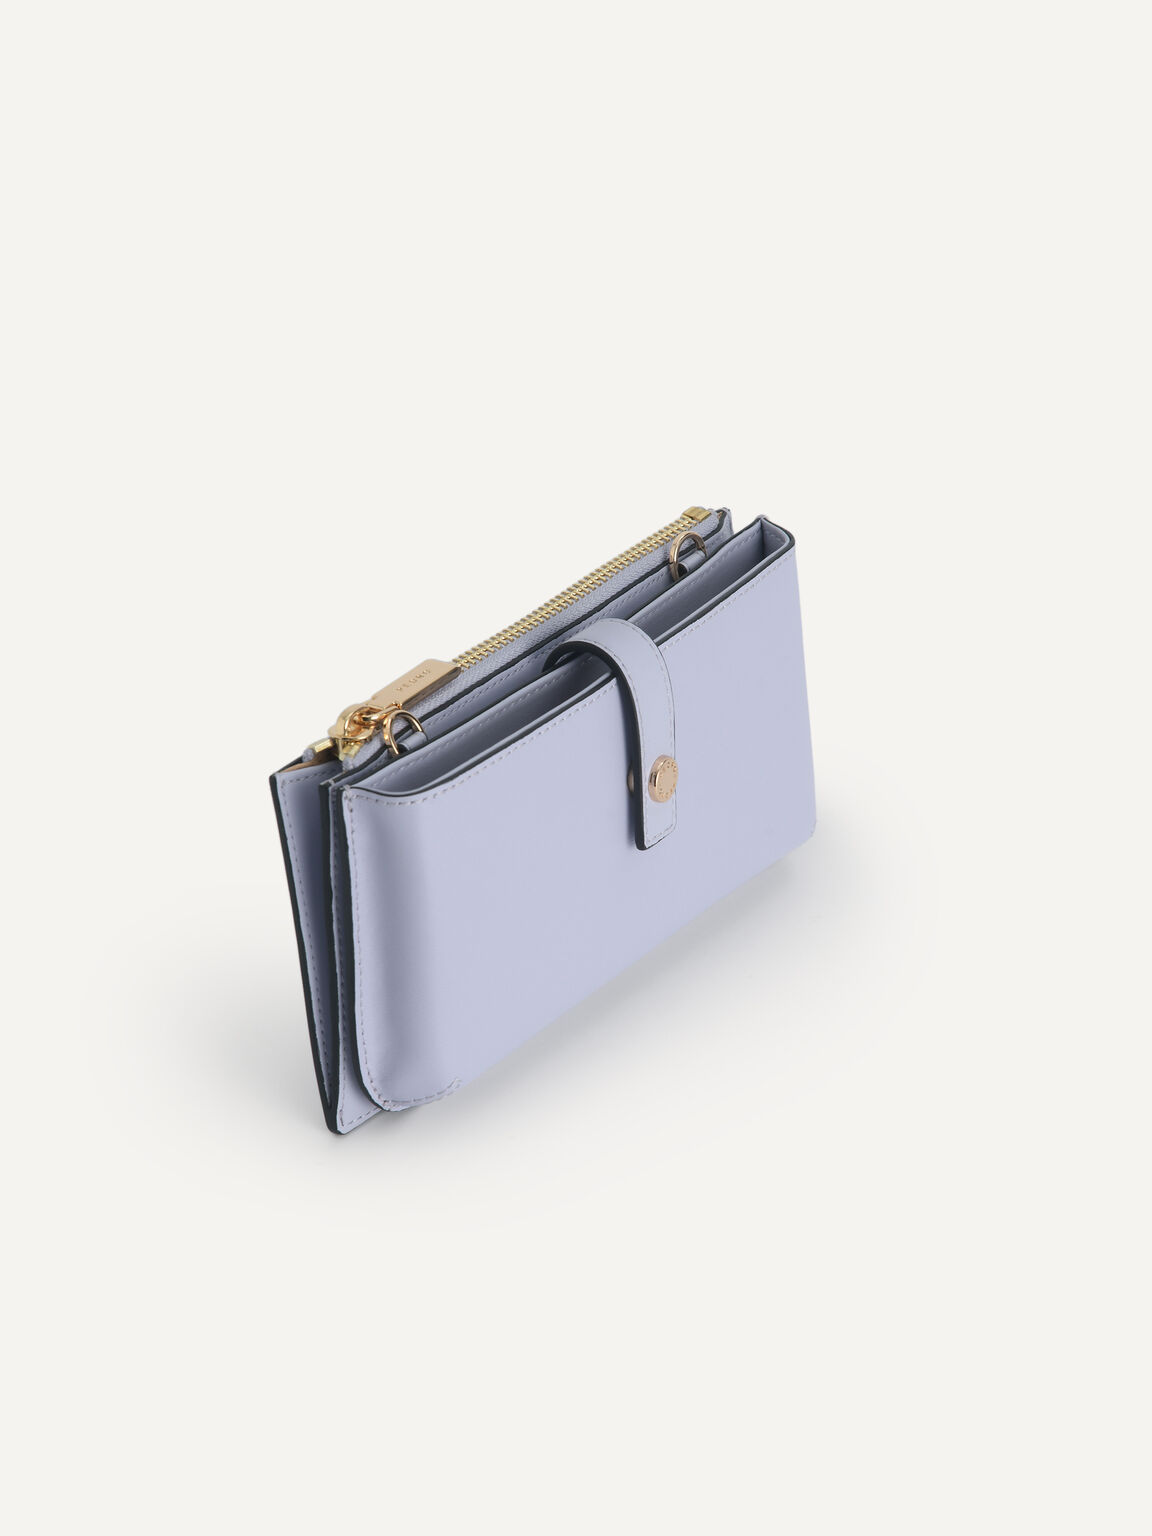 Textured Leather Phone Pouch, Lilac, hi-res